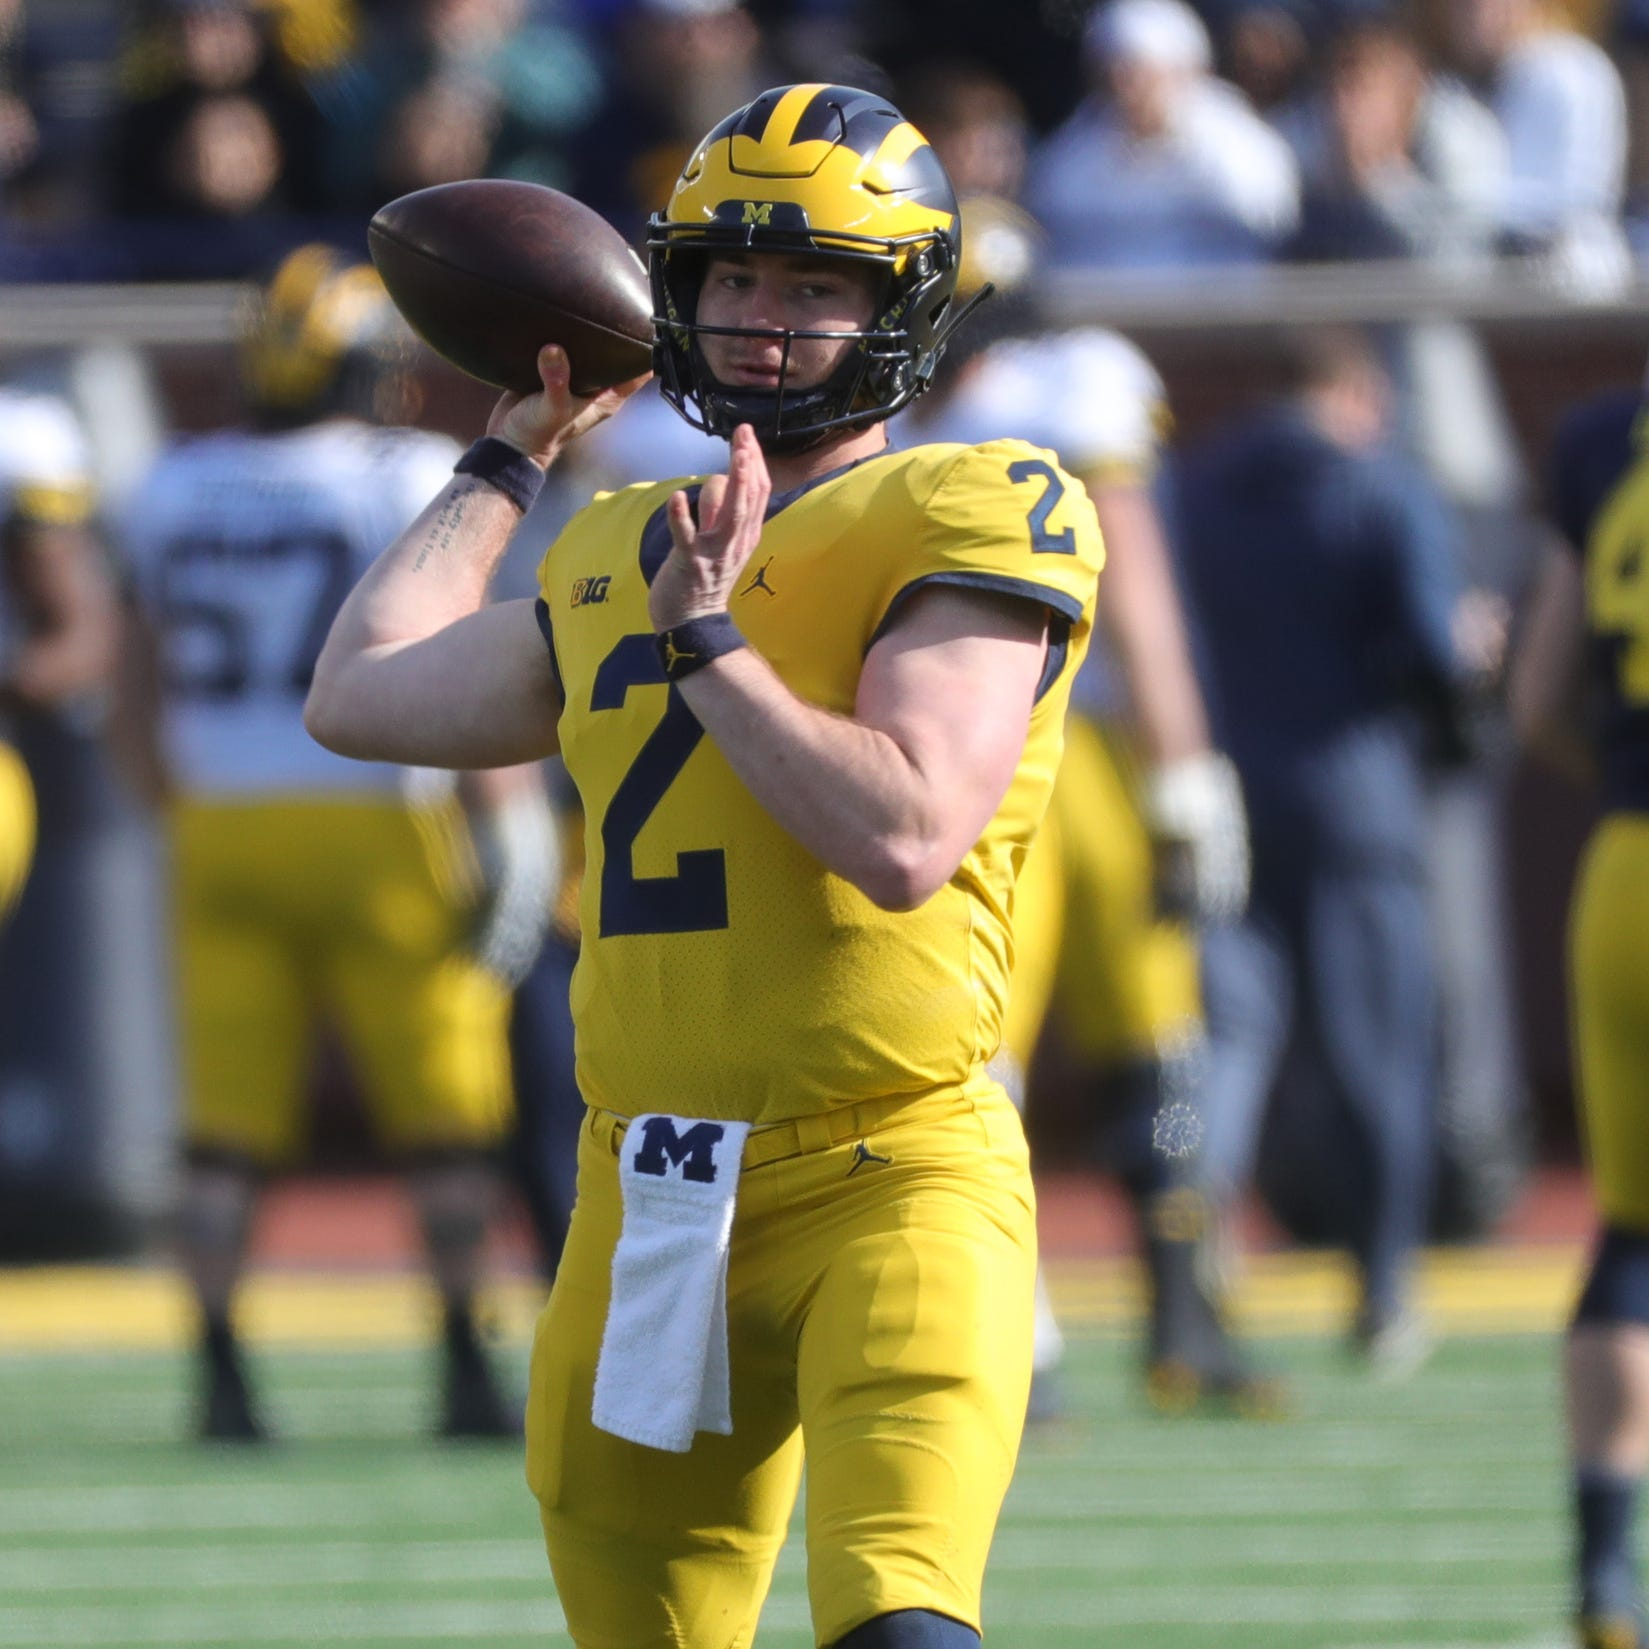 Michigan football spring game: QB Shea Patterson looks smooth